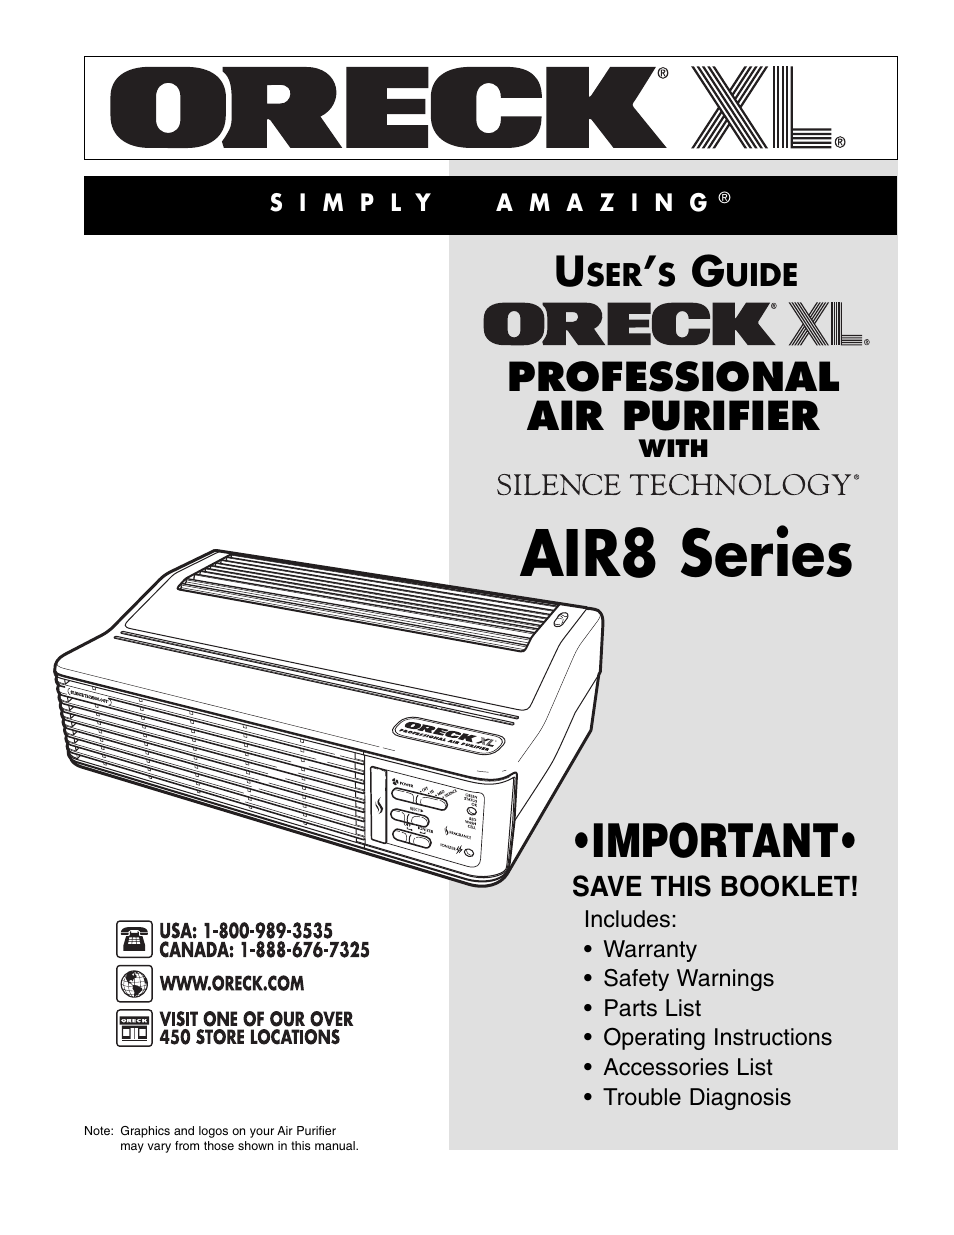 Oreck Xl 2600hh Wiring Diagram 30 Images Vacuum Rrofessional Air Purifier Air8 Series Page1 Diagrams Pdf Trusted